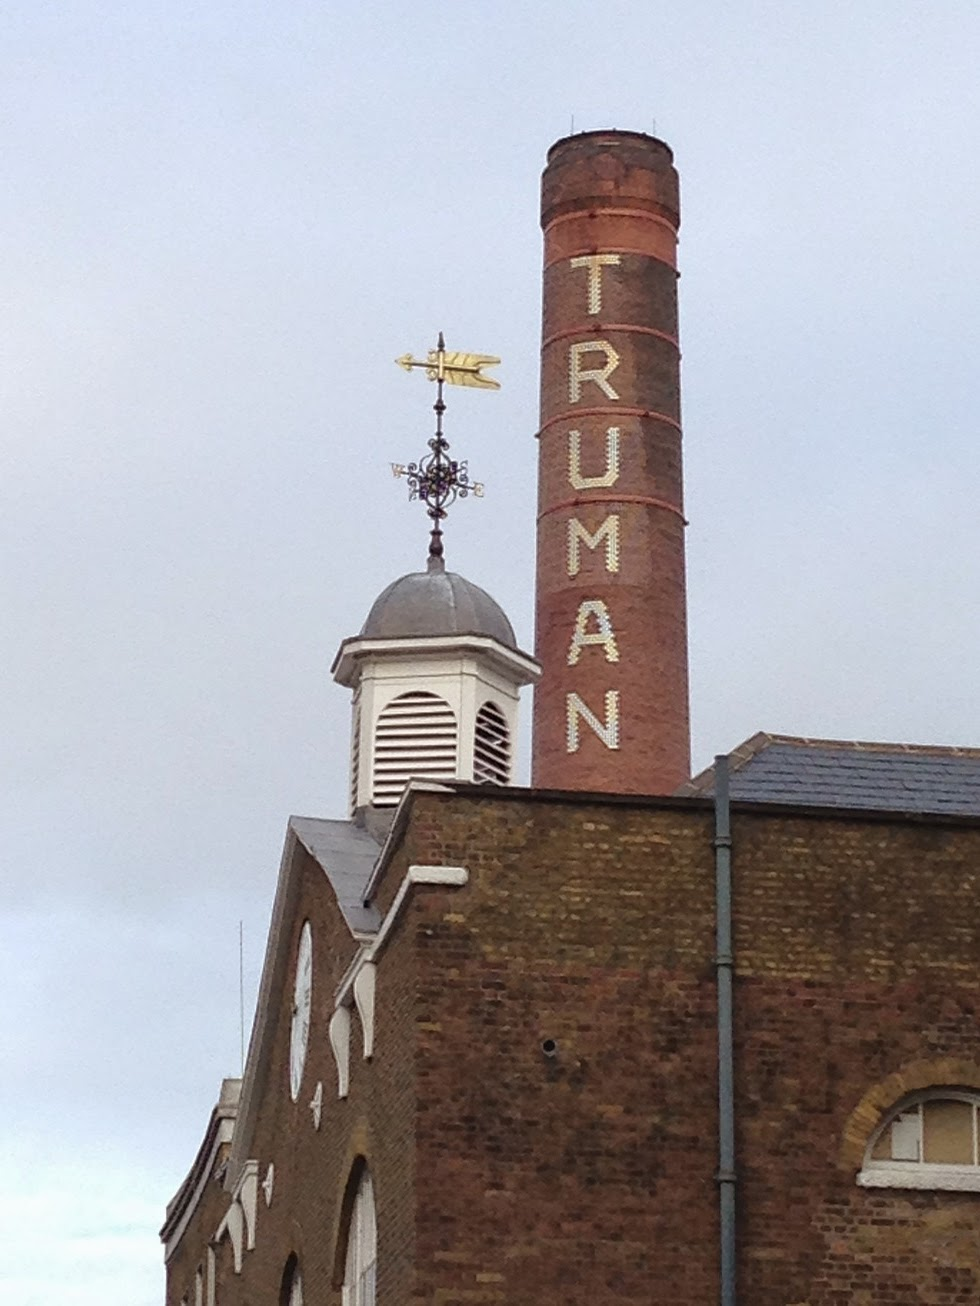 Ghost sign, Truman Brewery, Shoreditch, London